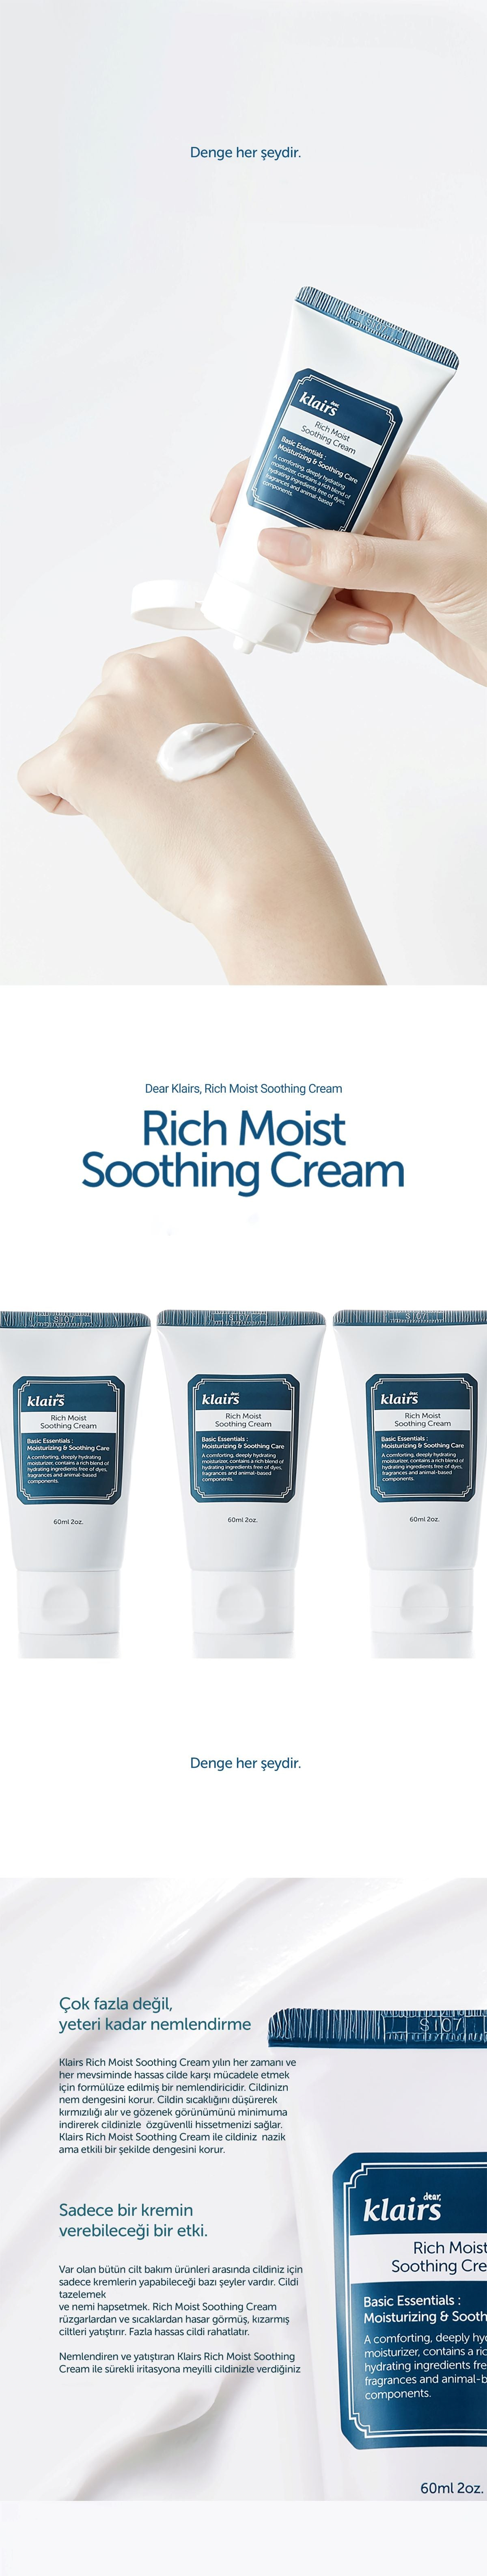 [Klairs] Rich Moist Soothing Cream TR-1